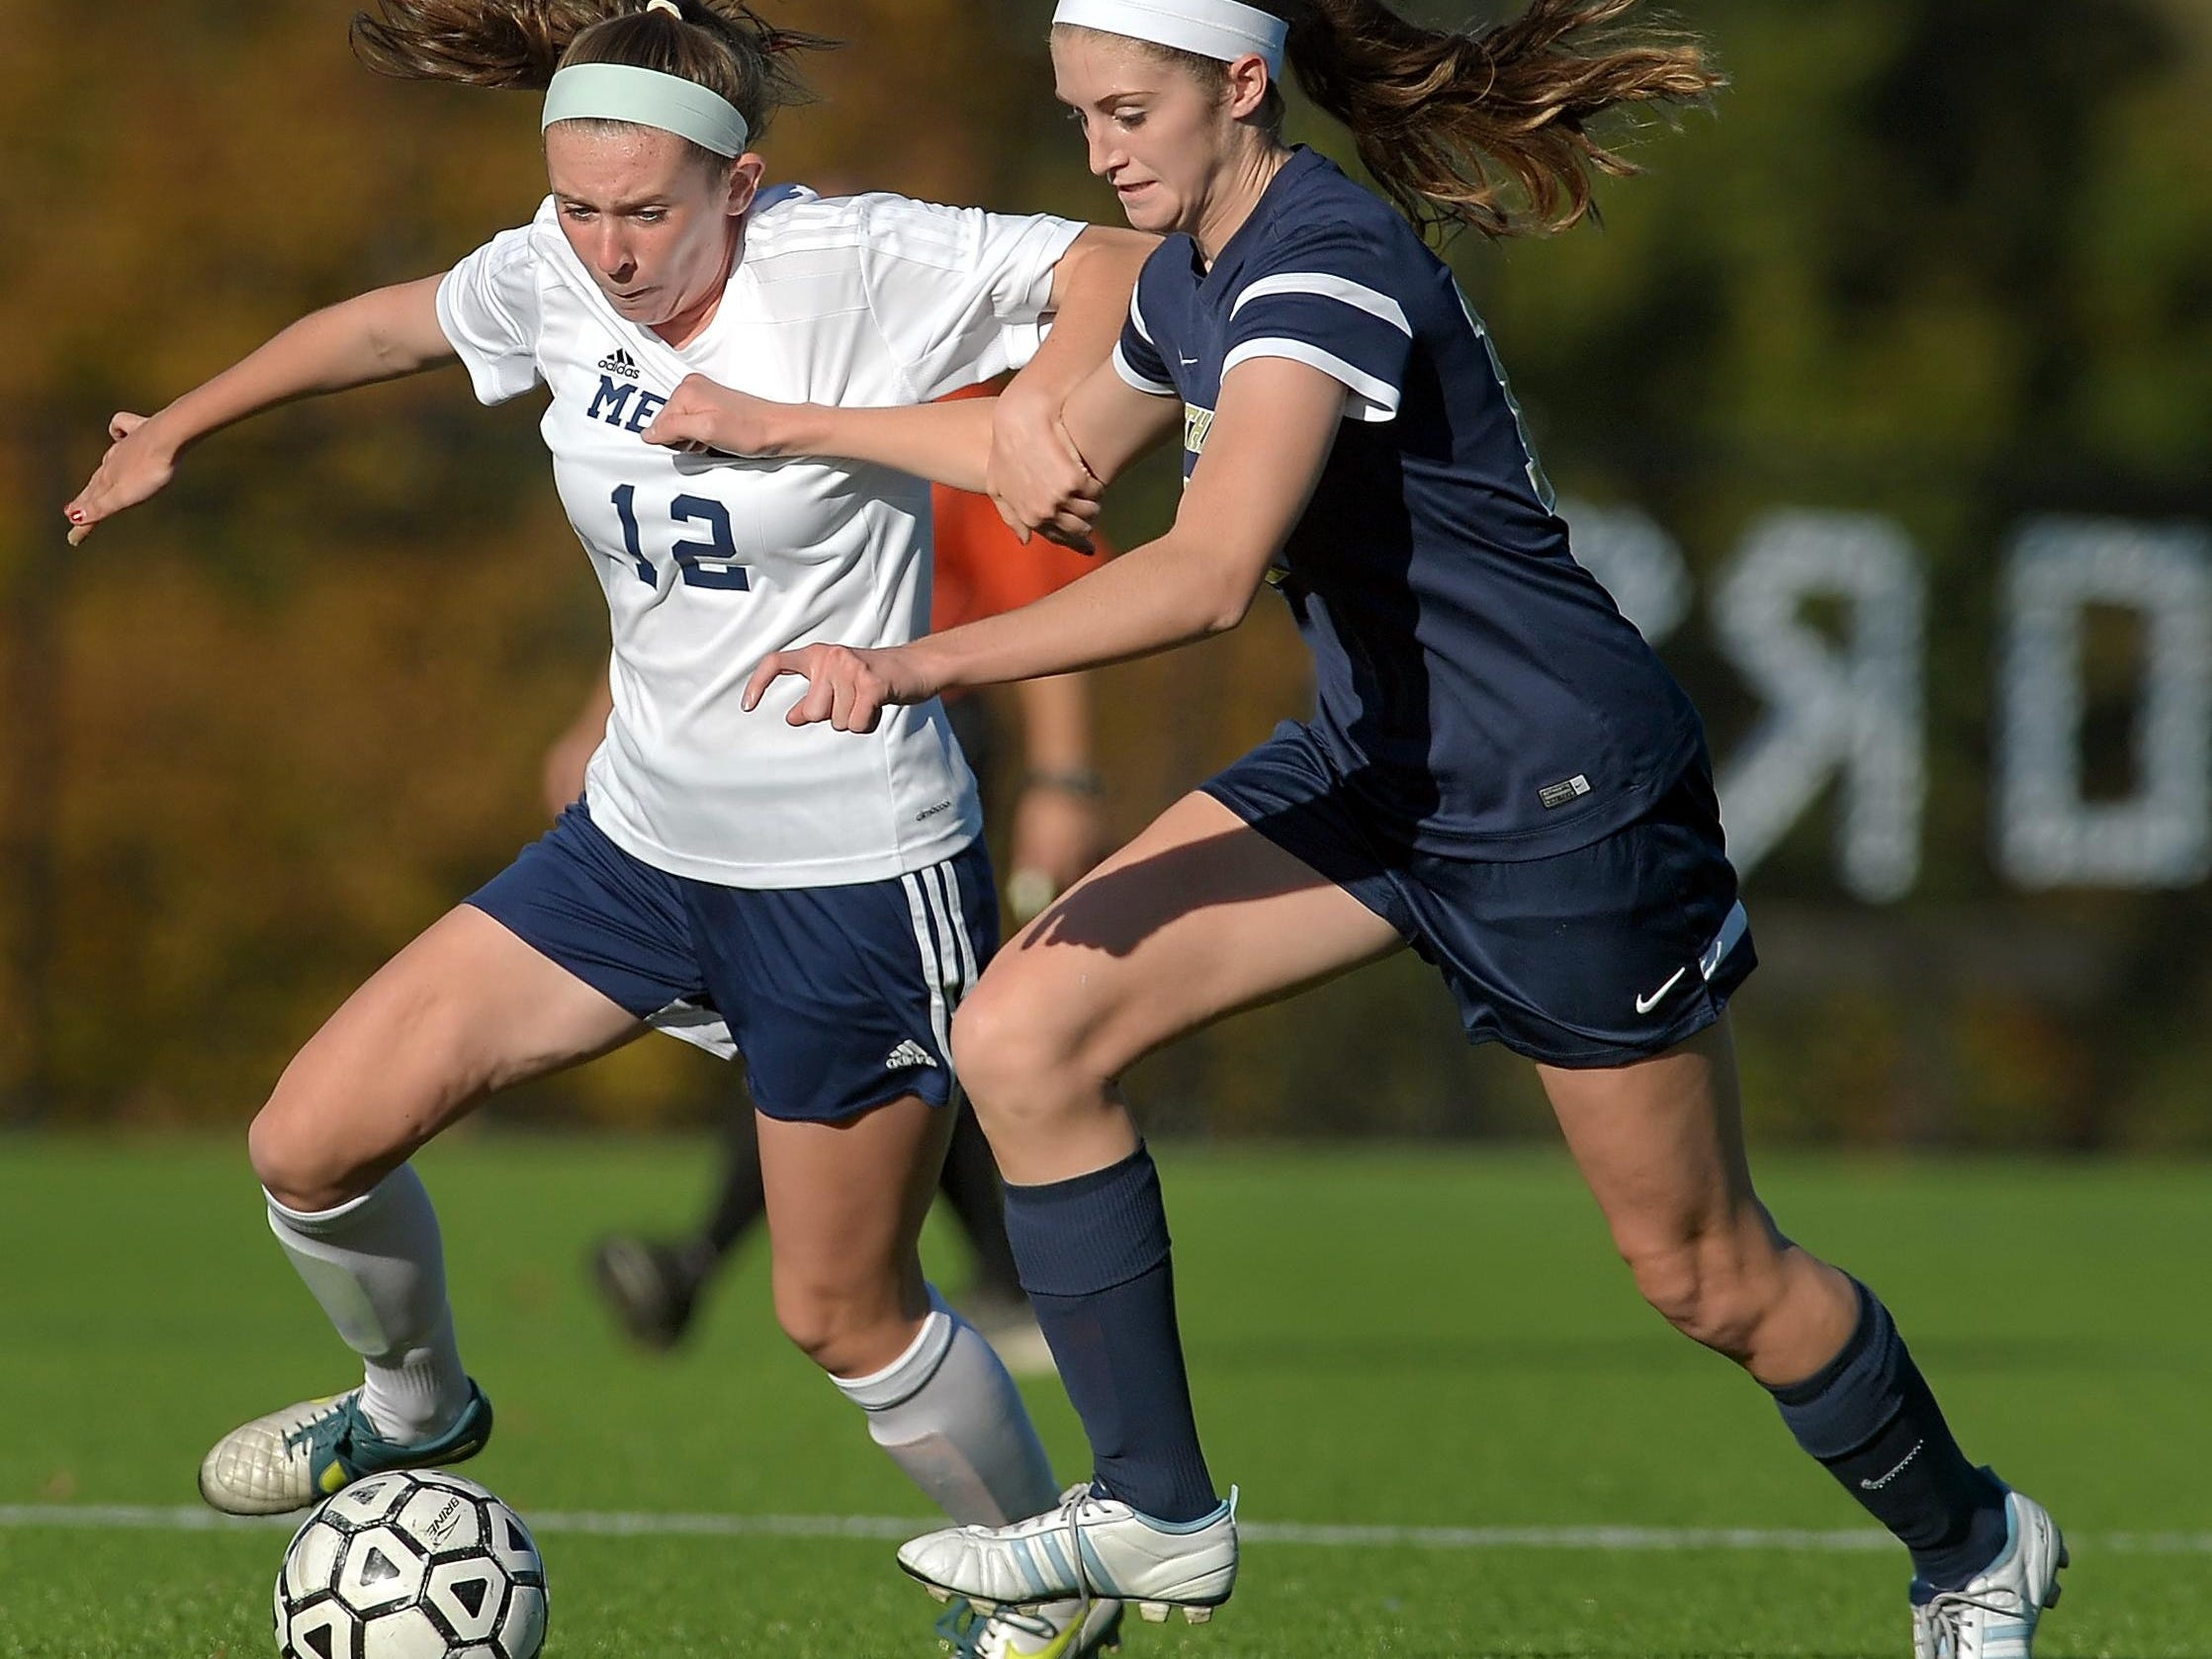 Mercy's Elizabeth Glynn, left, and Pittsford Sutherland's Emily Marshall chase a loose ball.